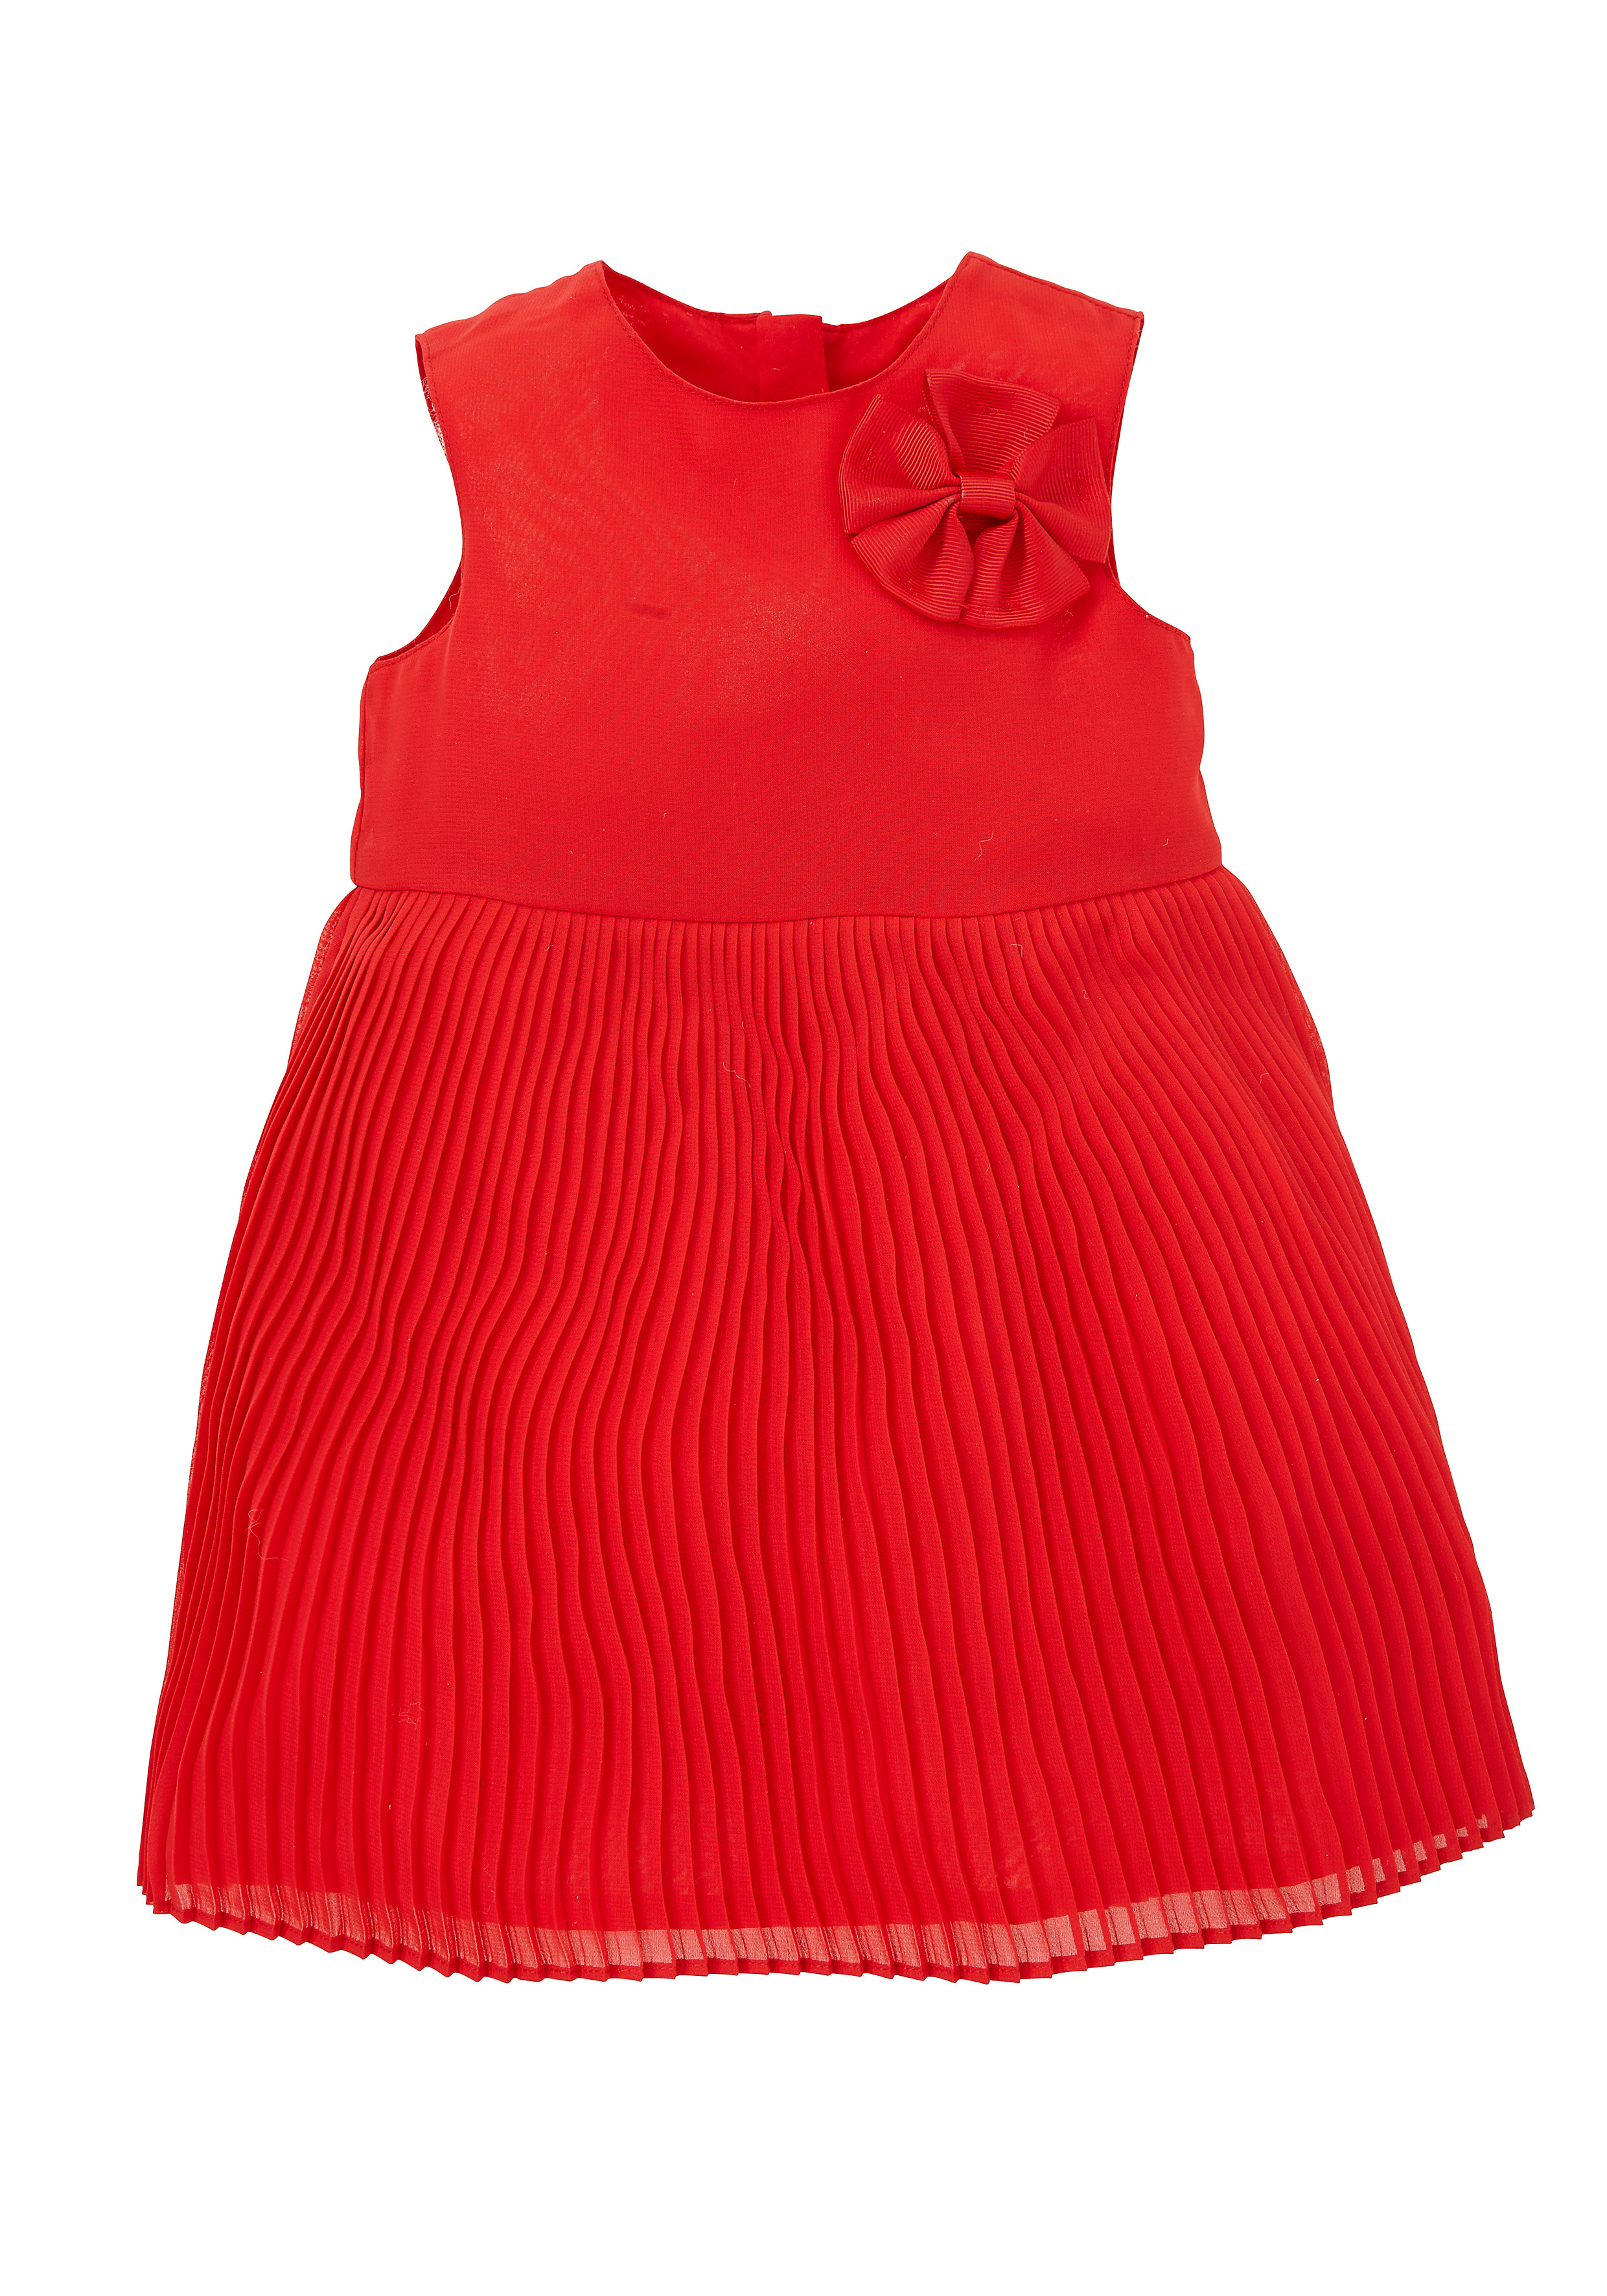 Mothercare | Girls Pleated Red Dress